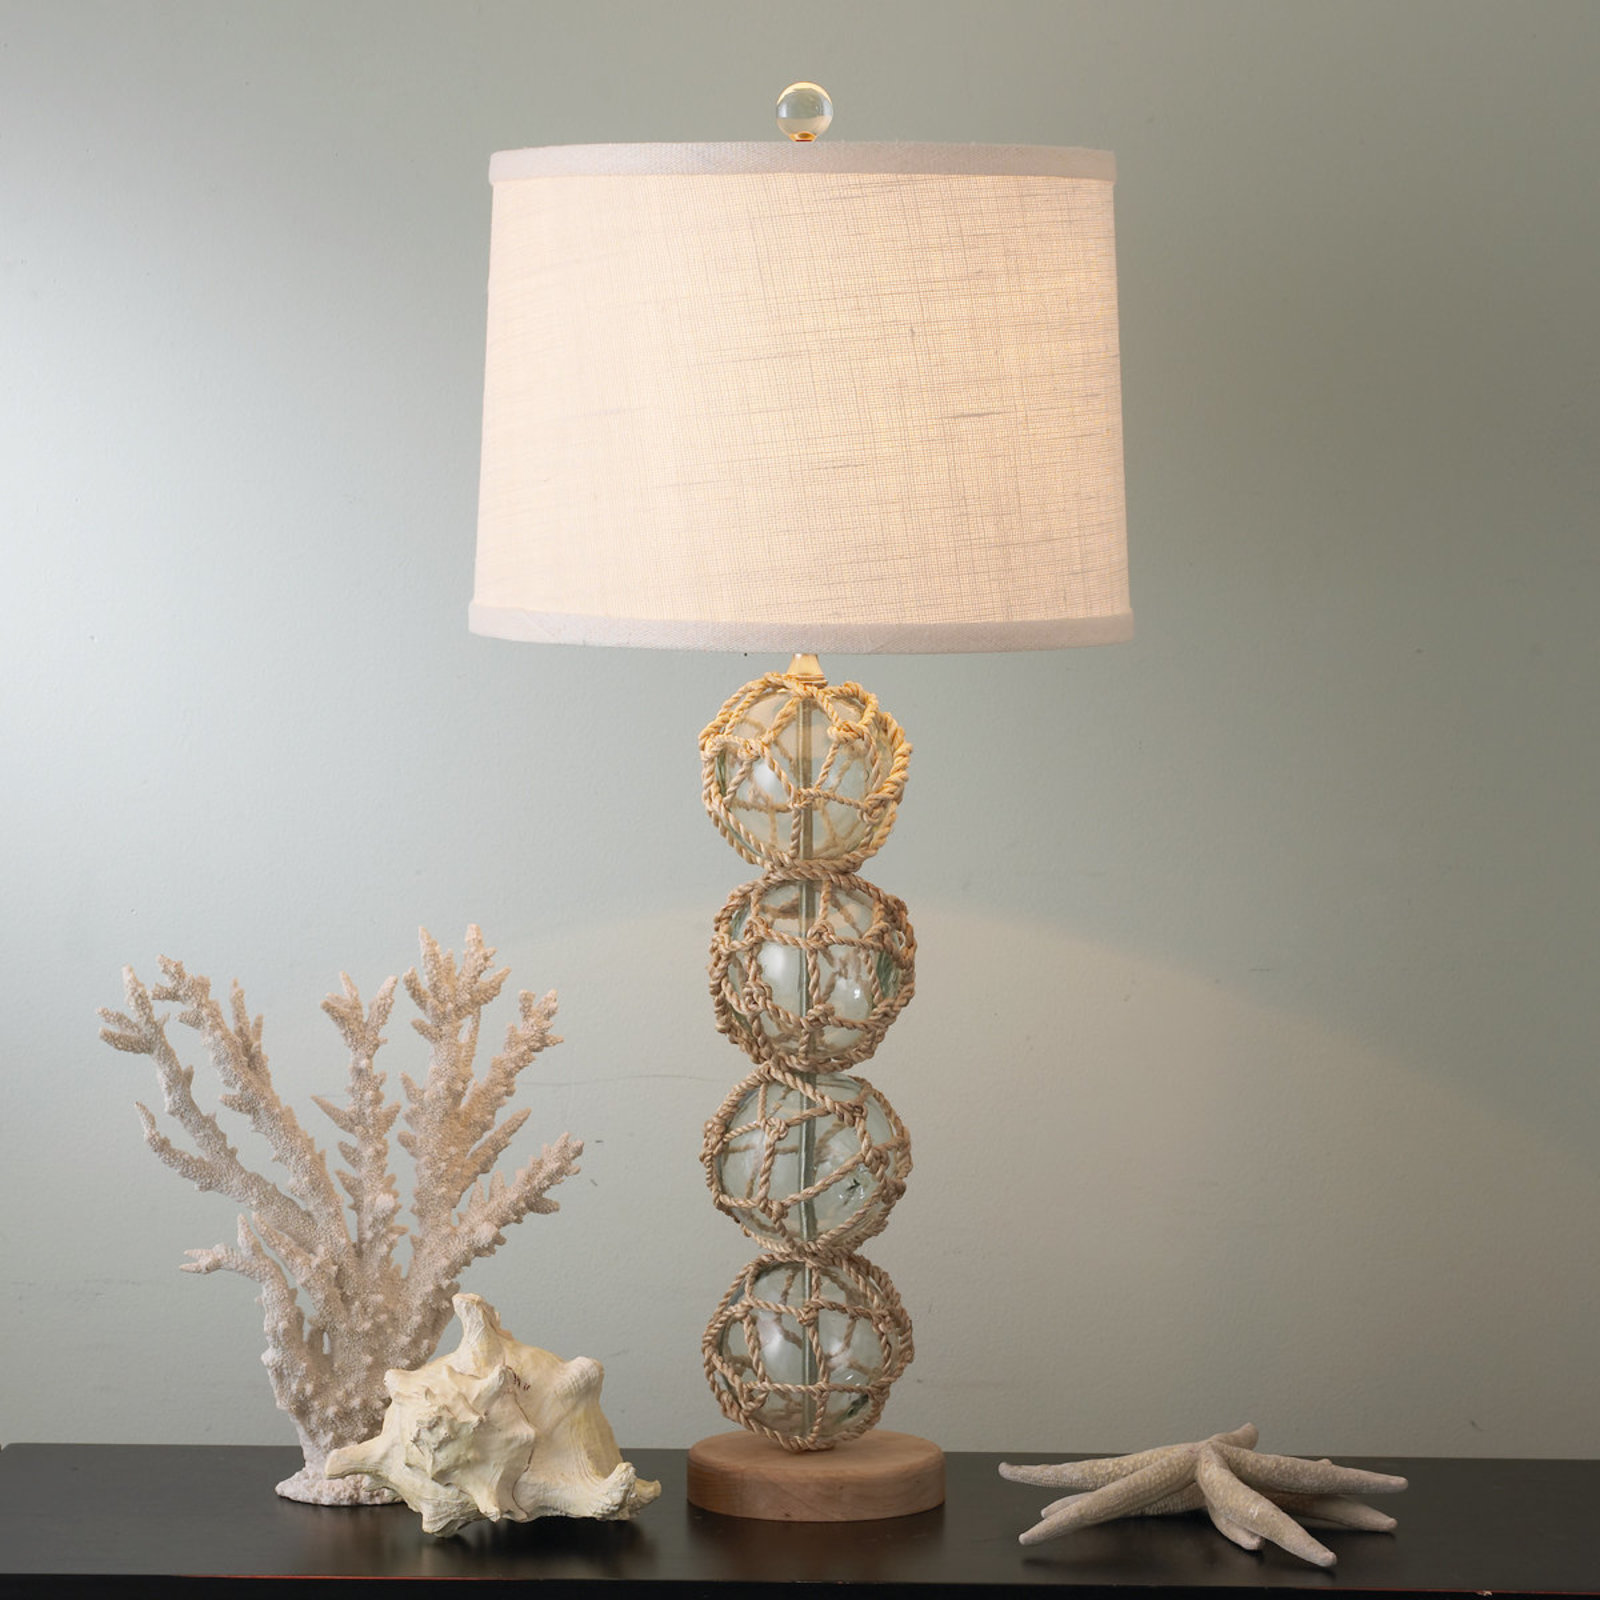 nautical rope and glass ball table lamp shades light accent lamps marble tulip side entry mirror set country kitchen antique kidney narrow console cabinet bathroom floor storage